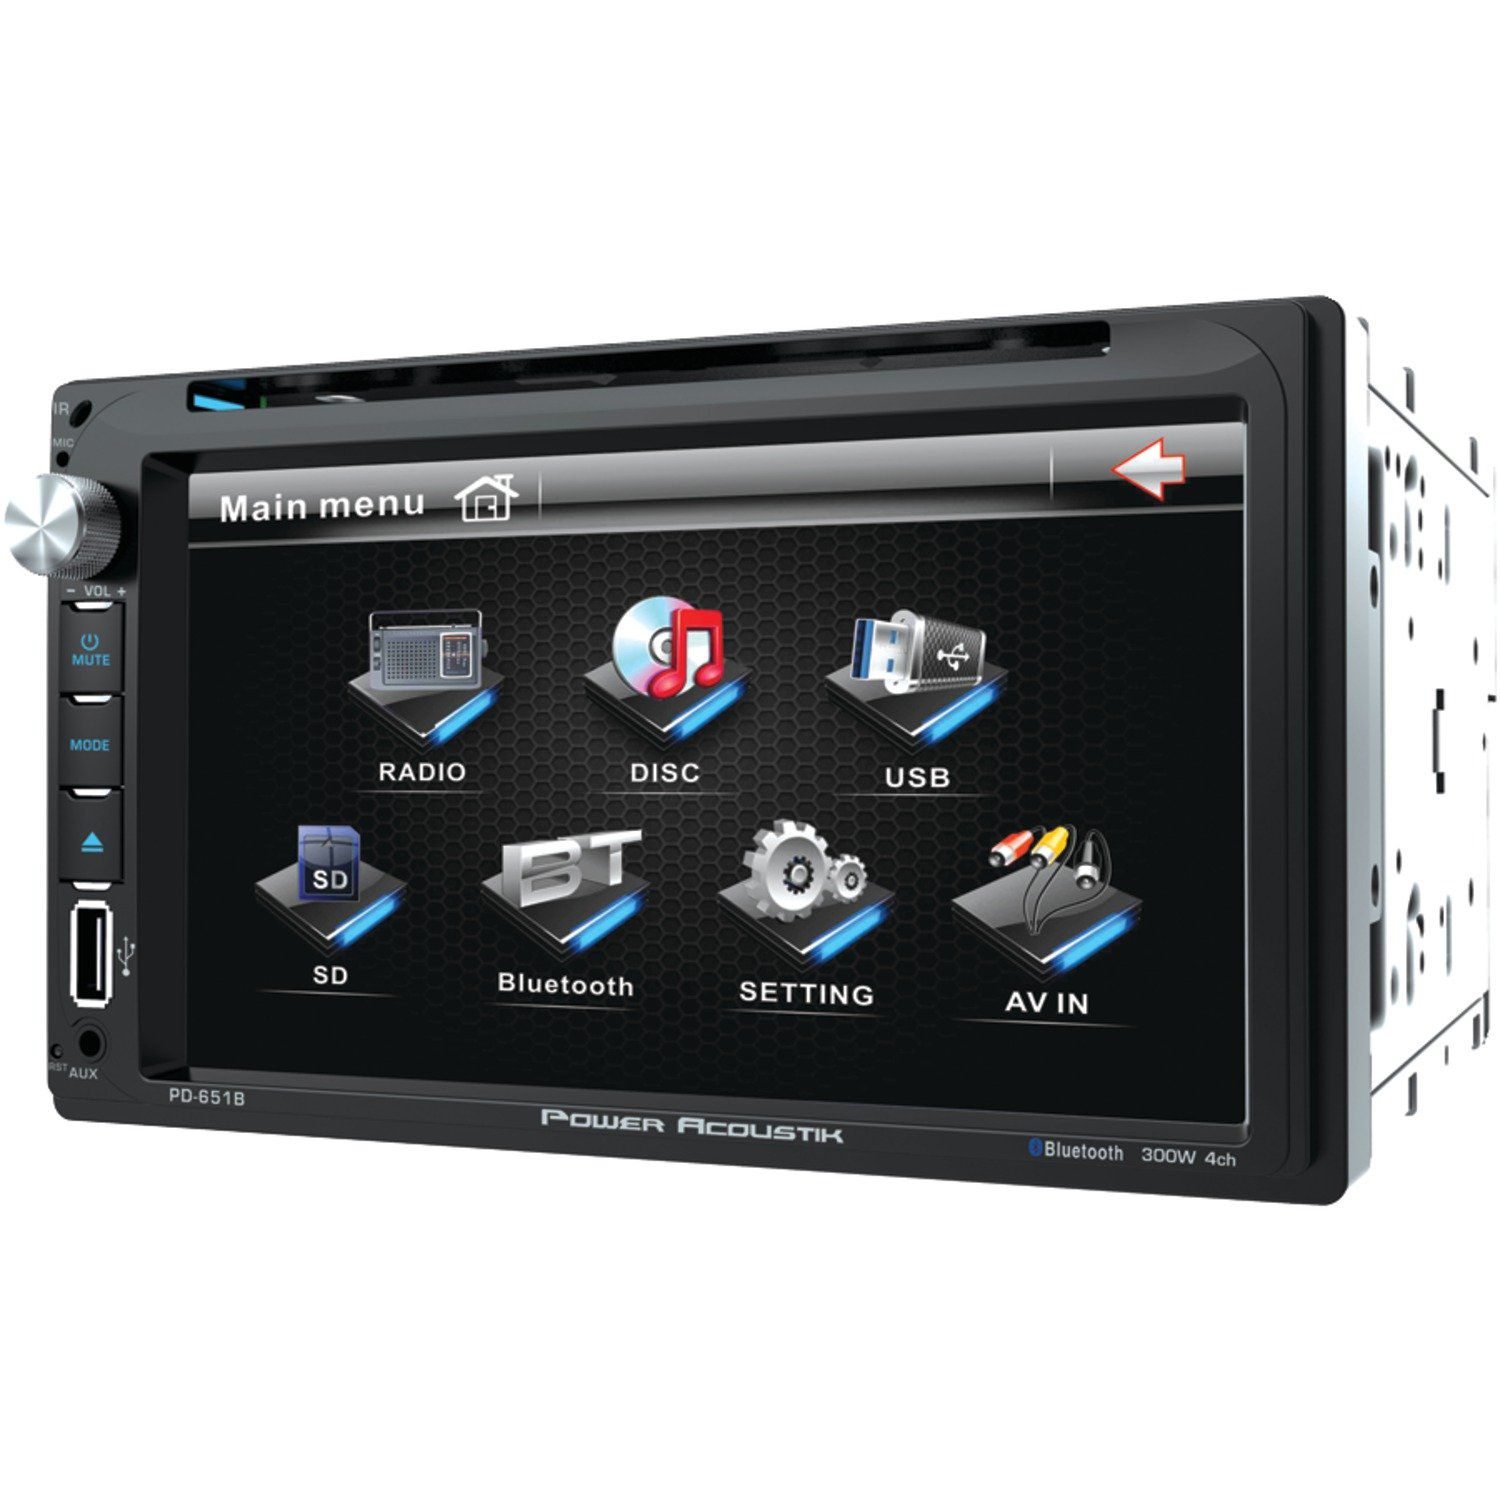 Power Acoustik PD 651B 6.5'' Double-DIN In-Dash LCD Touchscreen DVD Receiver with Bluetooth